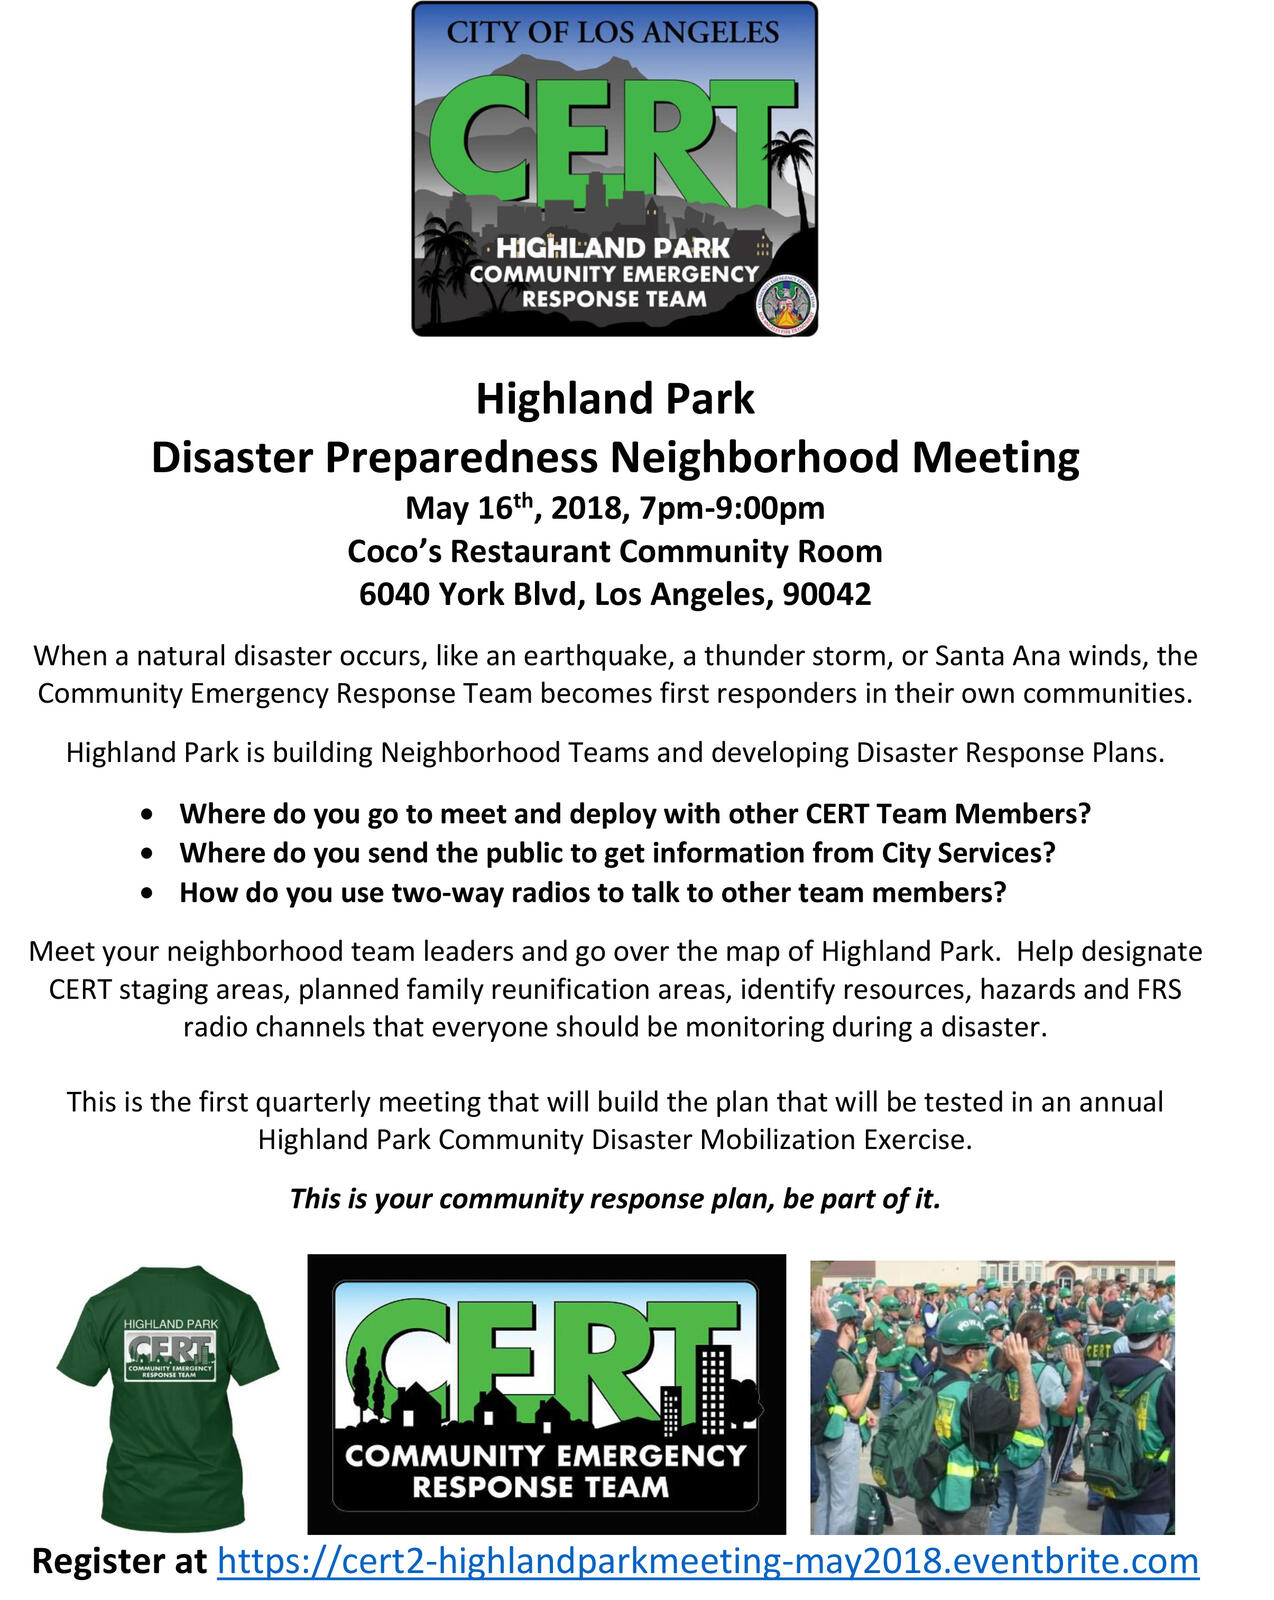 Highland Park Disaster Preparedness Meeting - Wed, May 16th